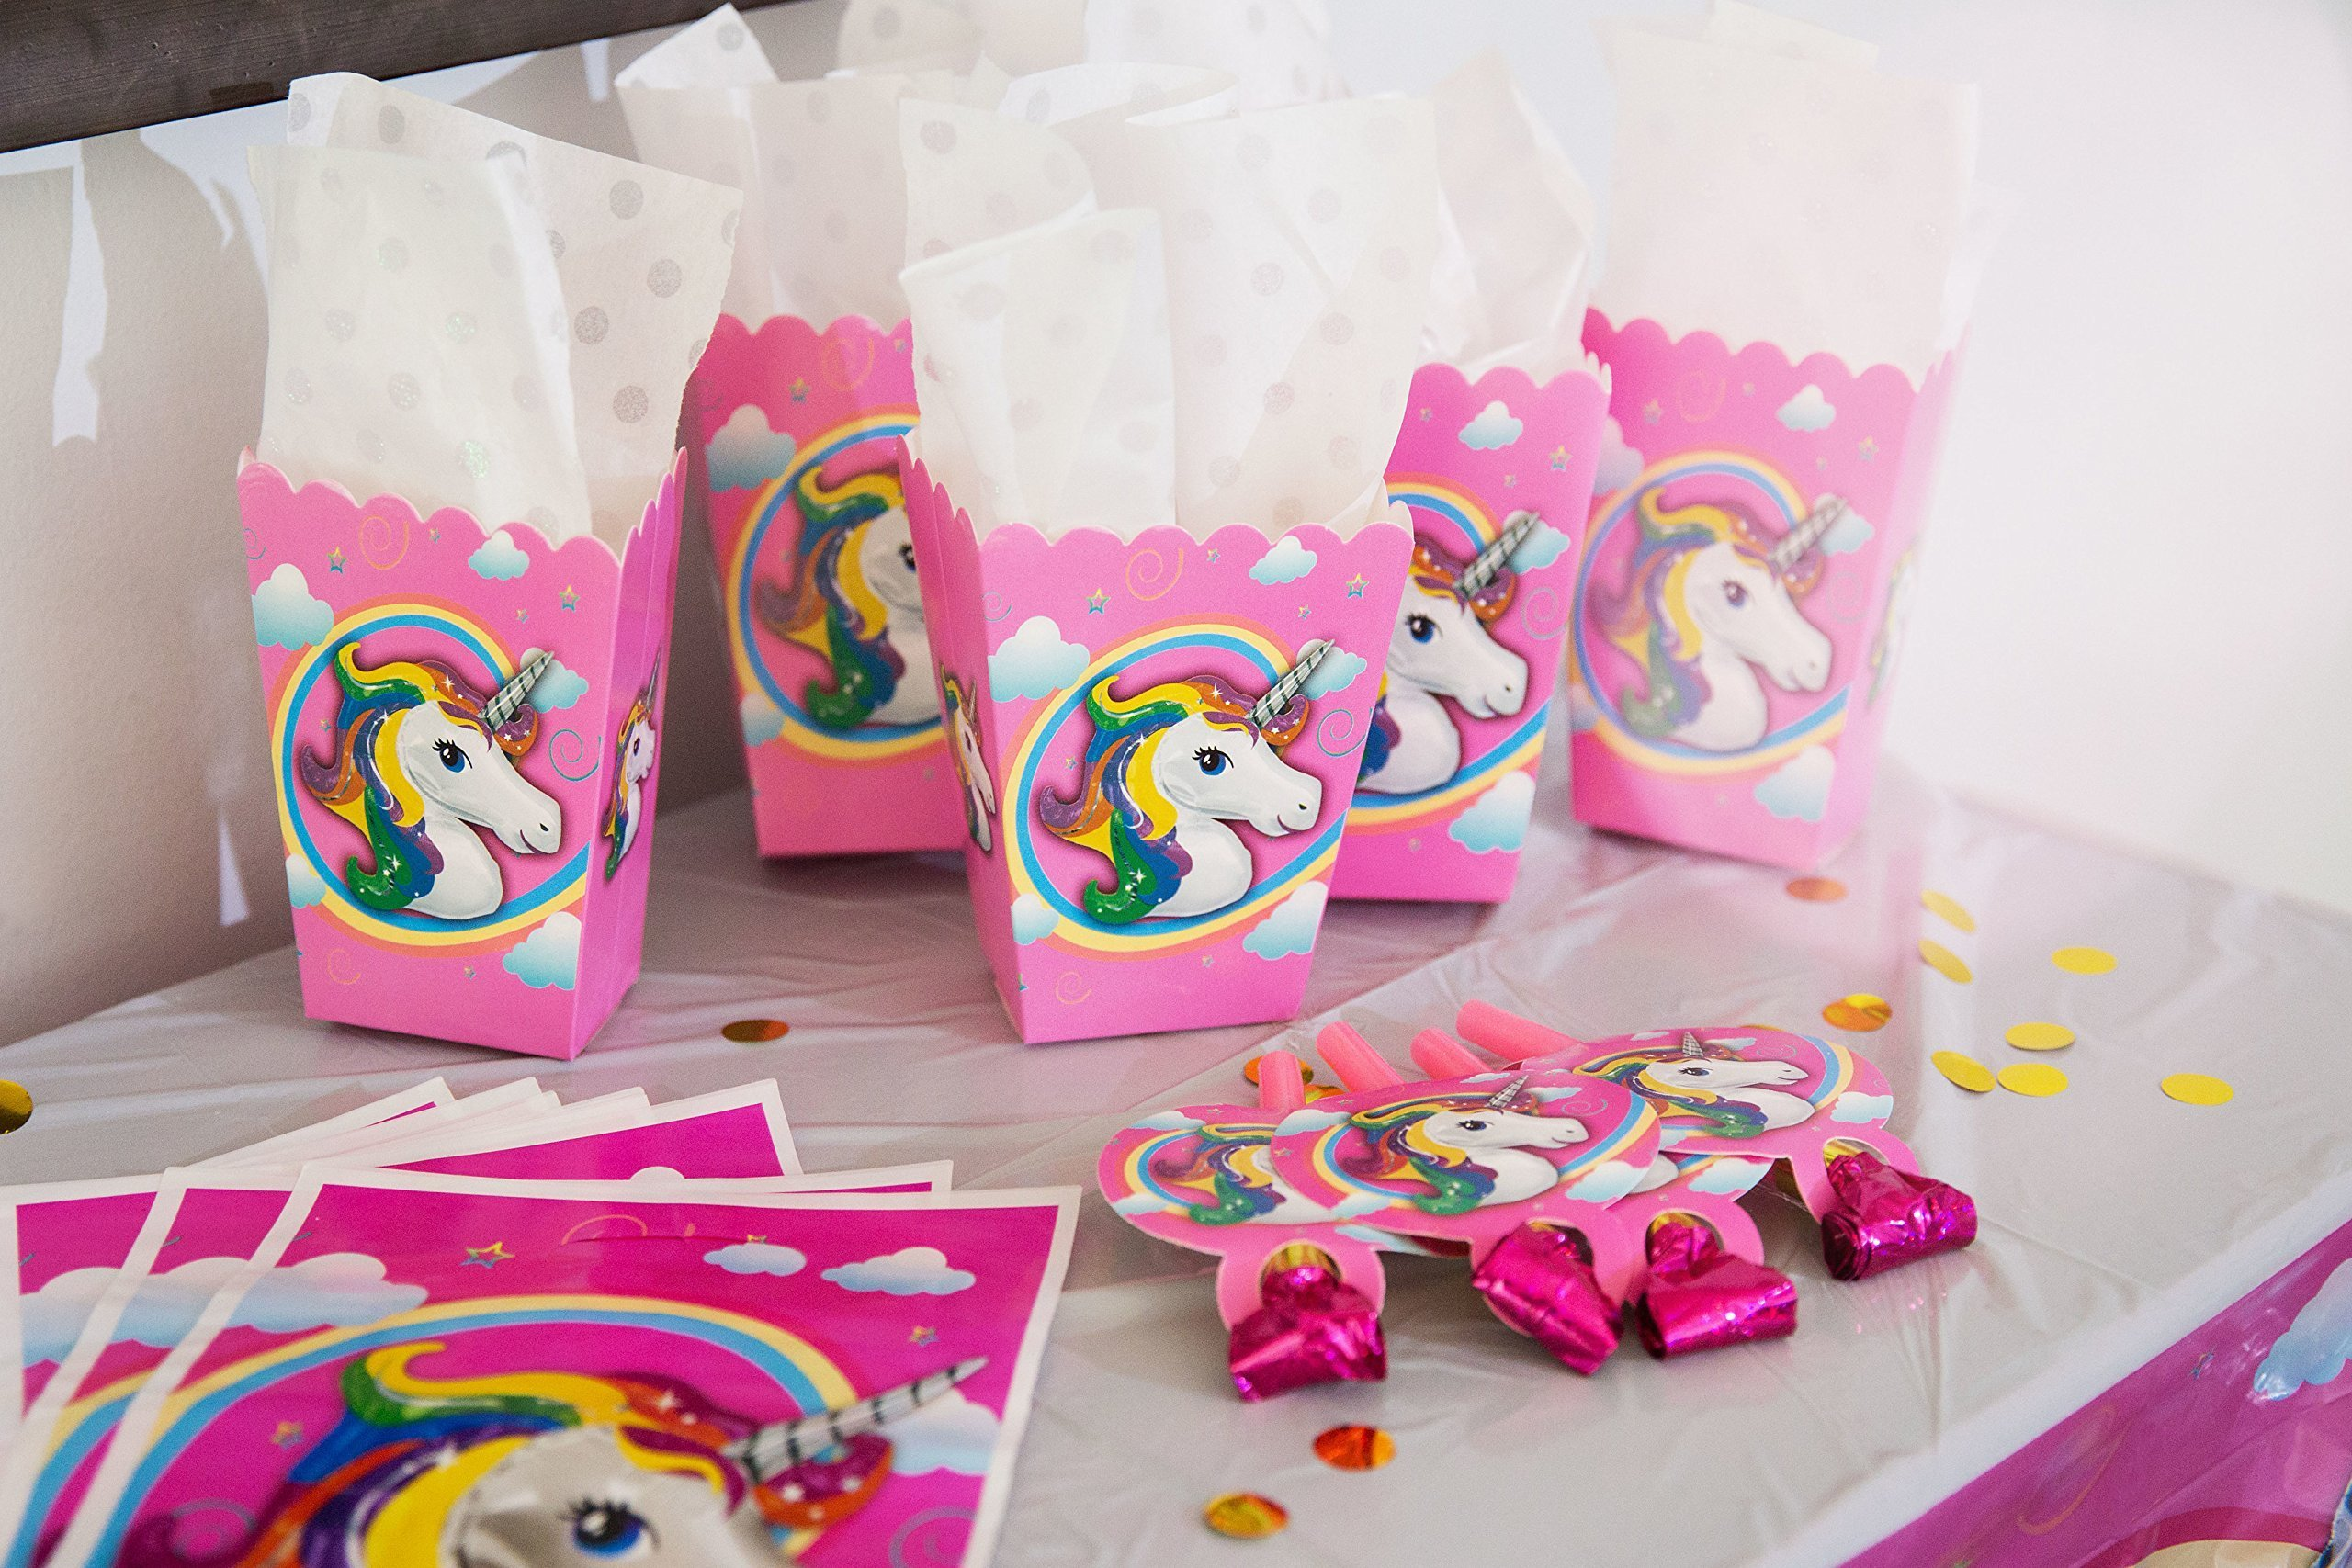 180+ PCS Complete Unicorn Party Supplies & Decorations - Glittery Unicorn Headband | Disposable Tableware Set | 30 Magical Balloons | 24 Pc Unicorn Cupcake Wrappers & Toppers | Party Favors by FETTI FETTI (Image #9)